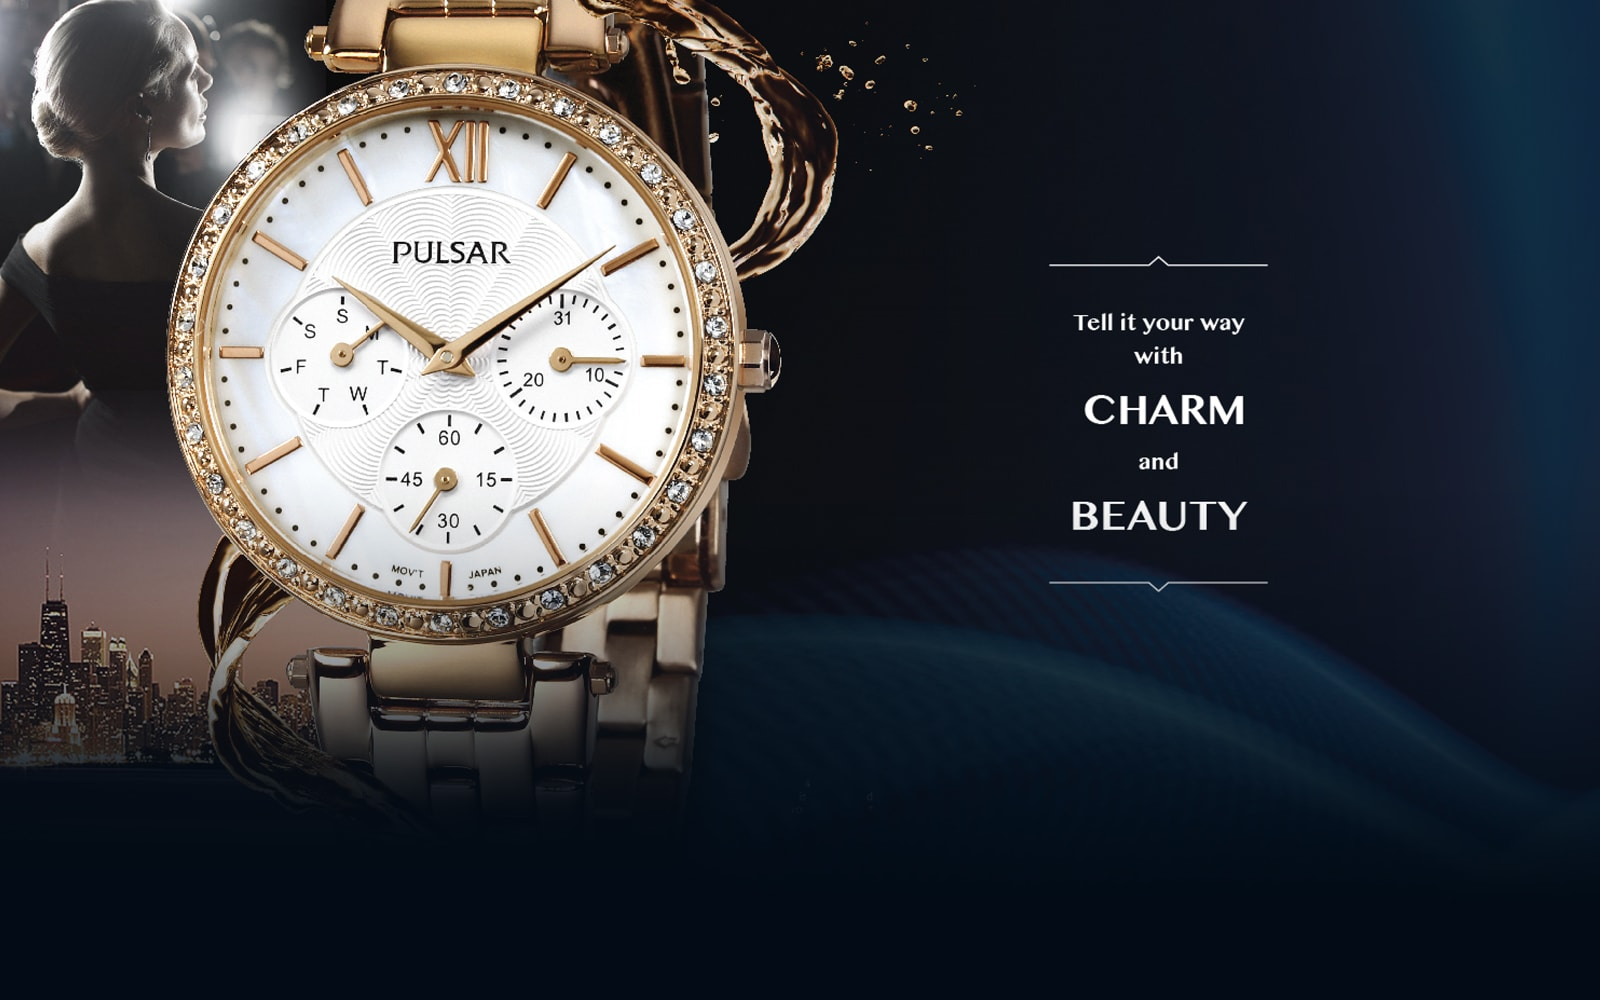 Pulsar Ladies - Tell it your way with charm and beauty